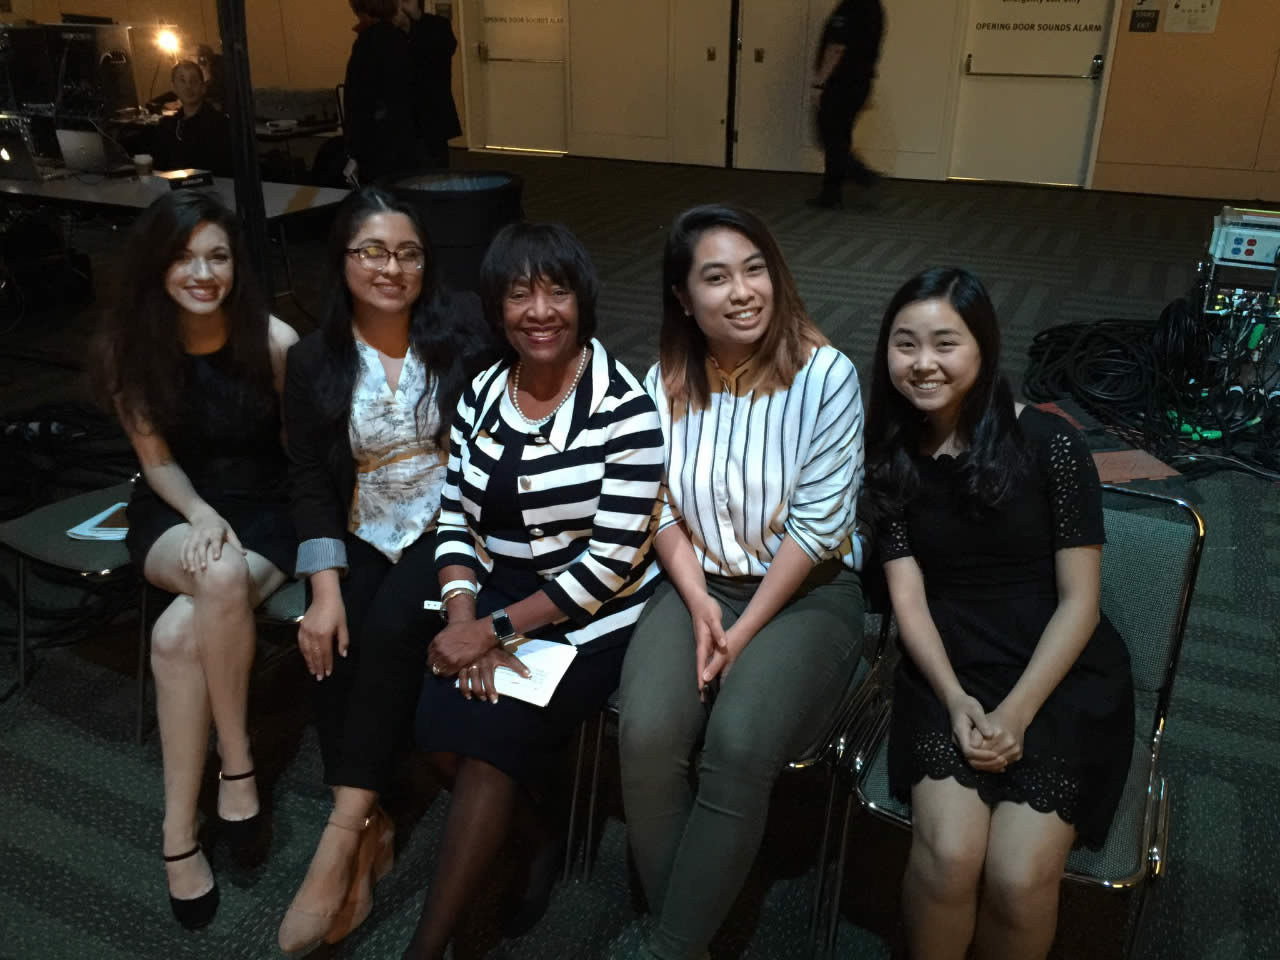 "<div class=""meta image-caption""><div class=""origin-logo origin-image none""><span>none</span></div><span class=""caption-text"">Scholarship recipients at the West at the Professional BusinessWomen of California Conference in San Francisco on March, 28, 2017.</span></div>"